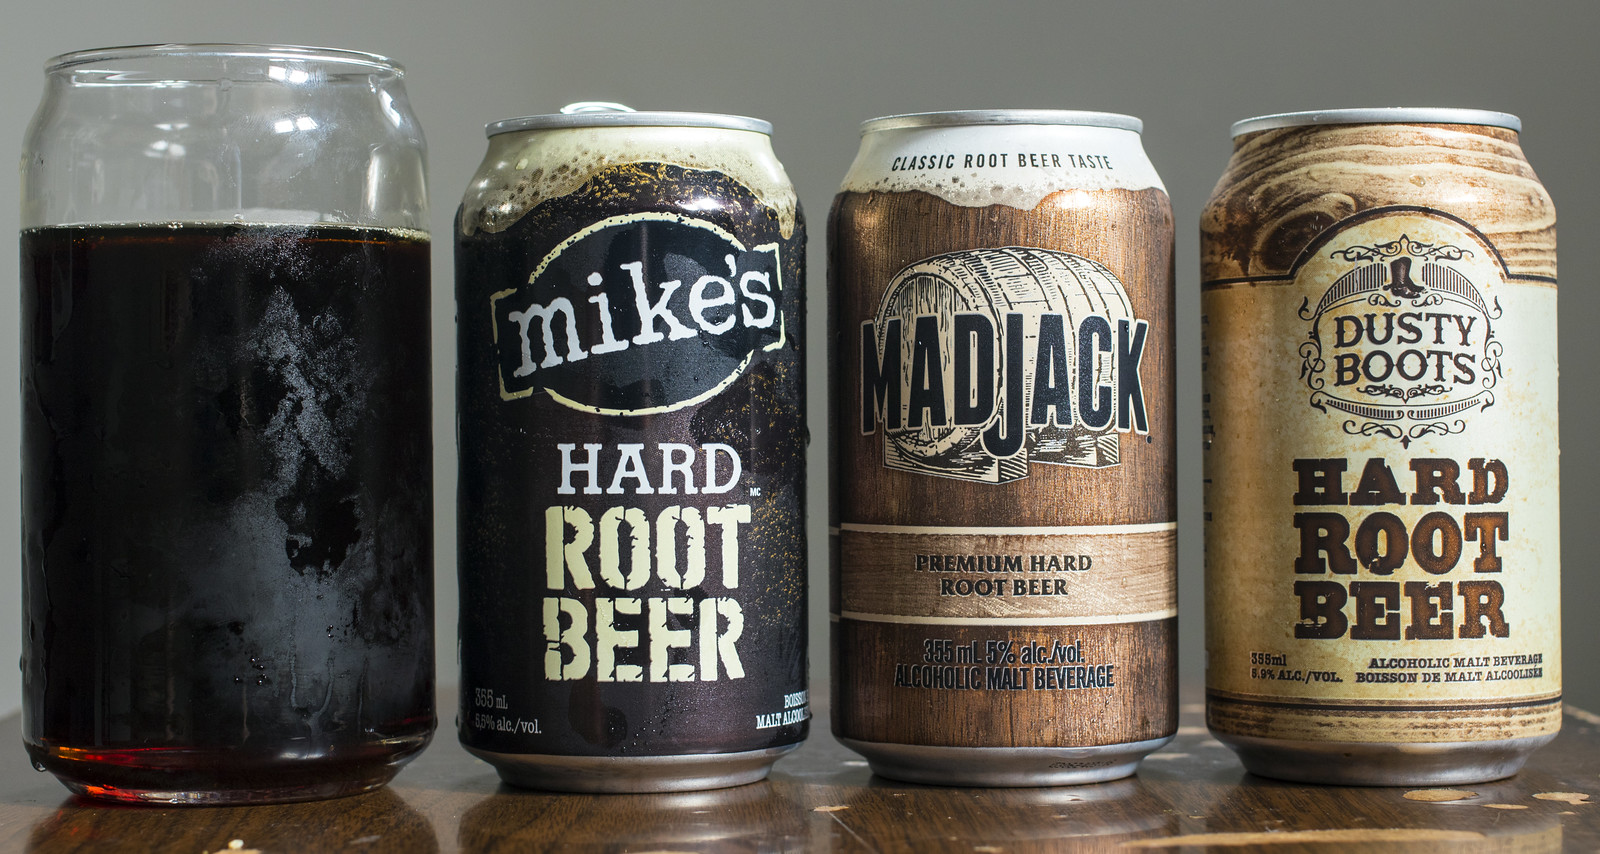 Seemly A Might As Well Go Might As Well Go A Alcoholic Root Beer Near Me Alcoholic Root Beer Float Galliano nice food Alcoholic Root Beer